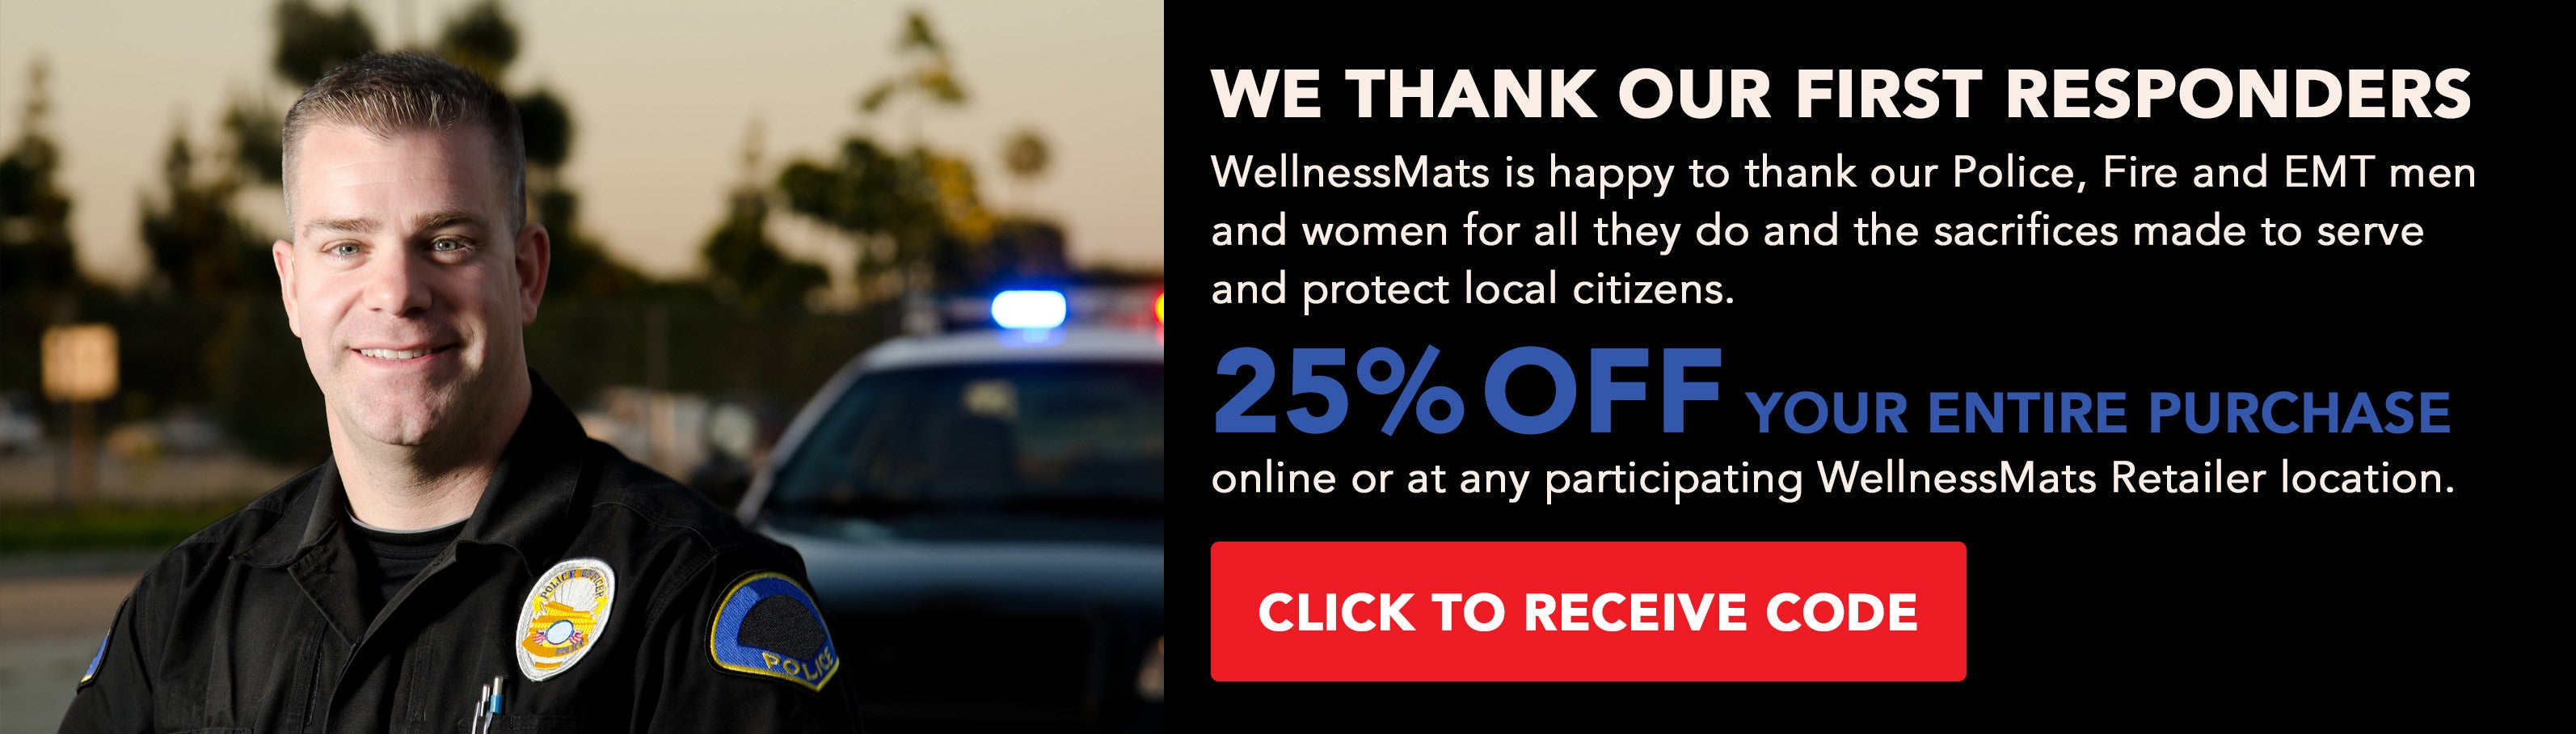 25% off WellnessMats for First Responders